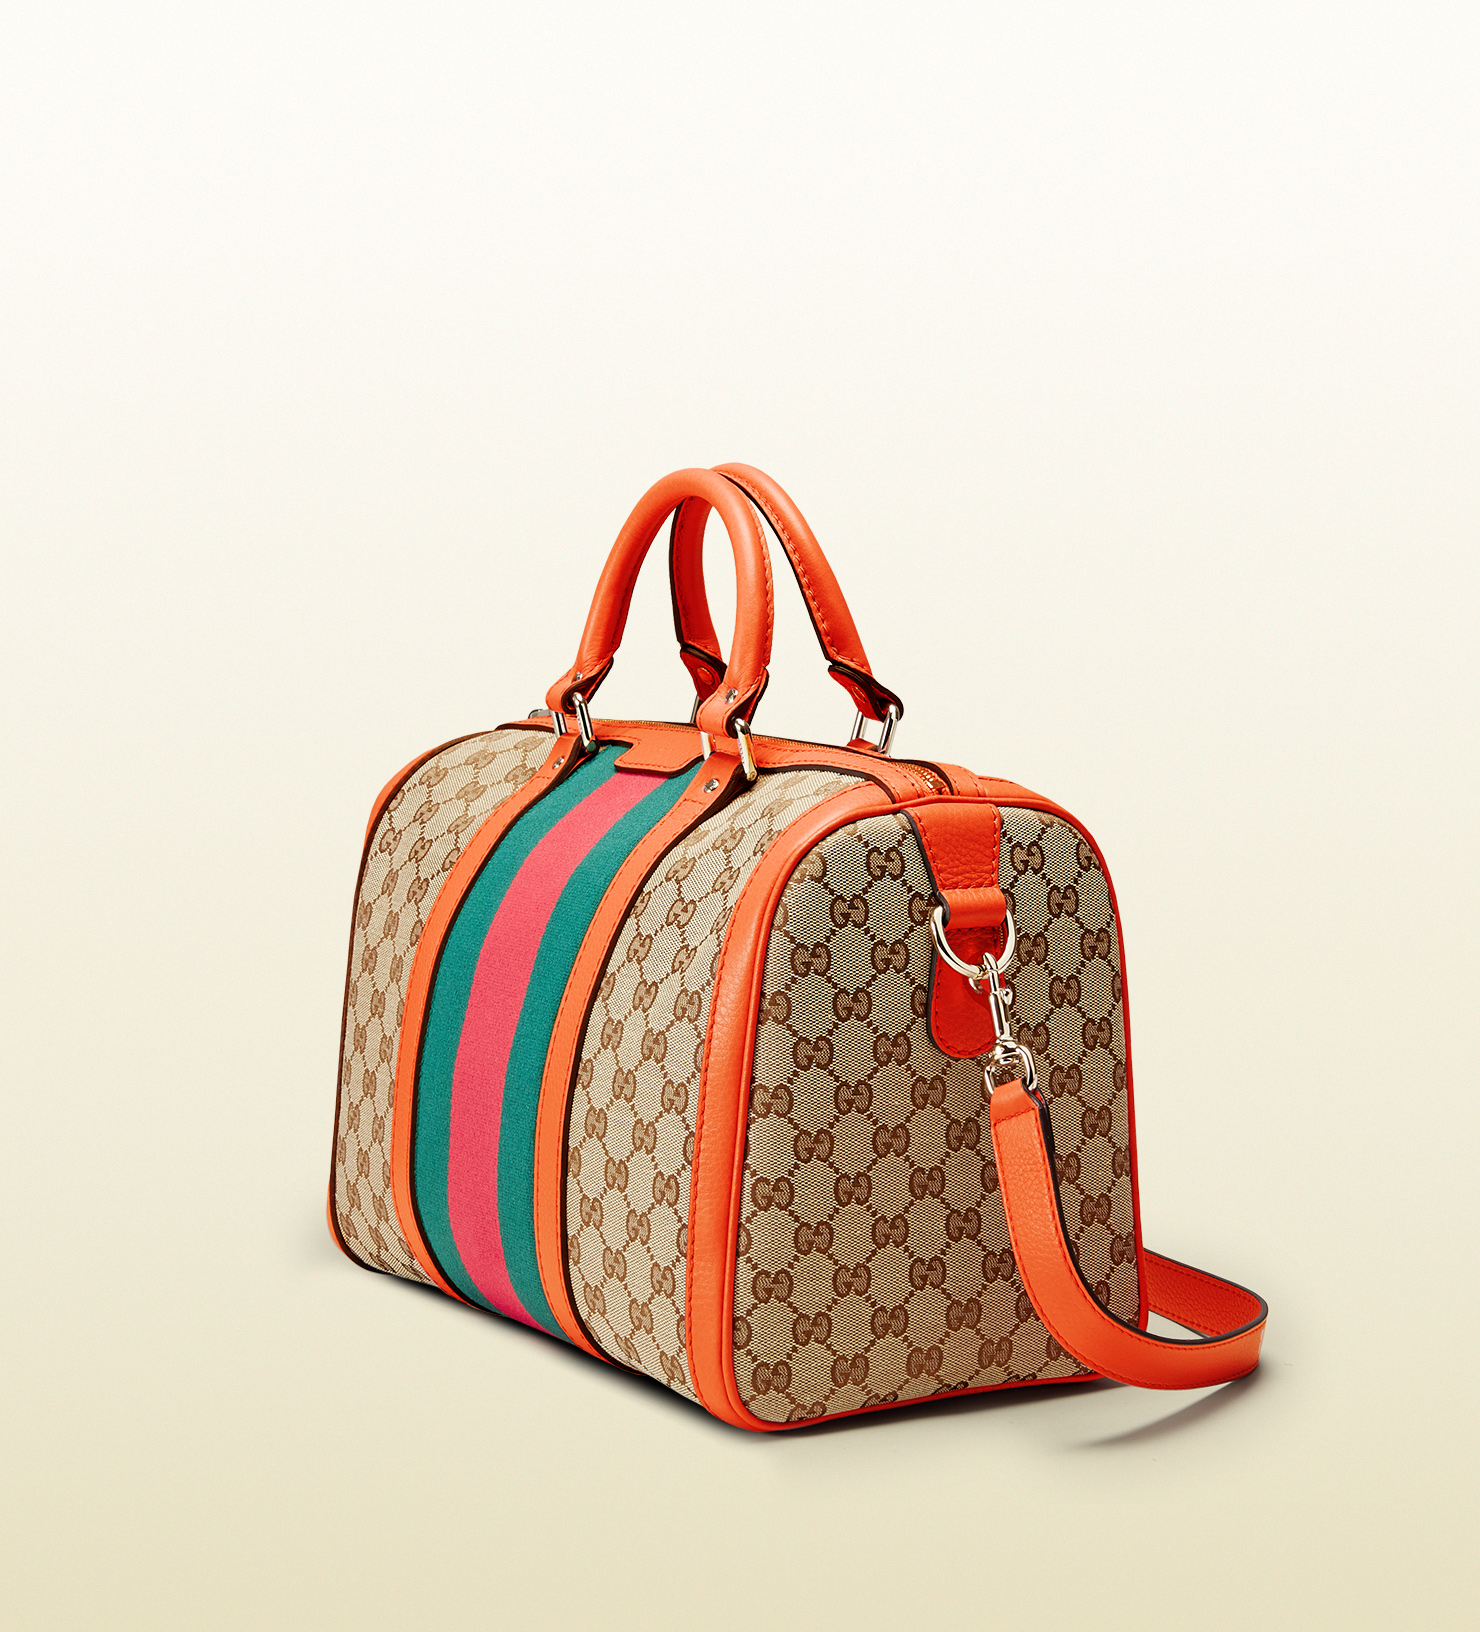 034e7bb26d15 Gucci Vintage Web Original Gg Canvas Boston Bag in Orange - Lyst